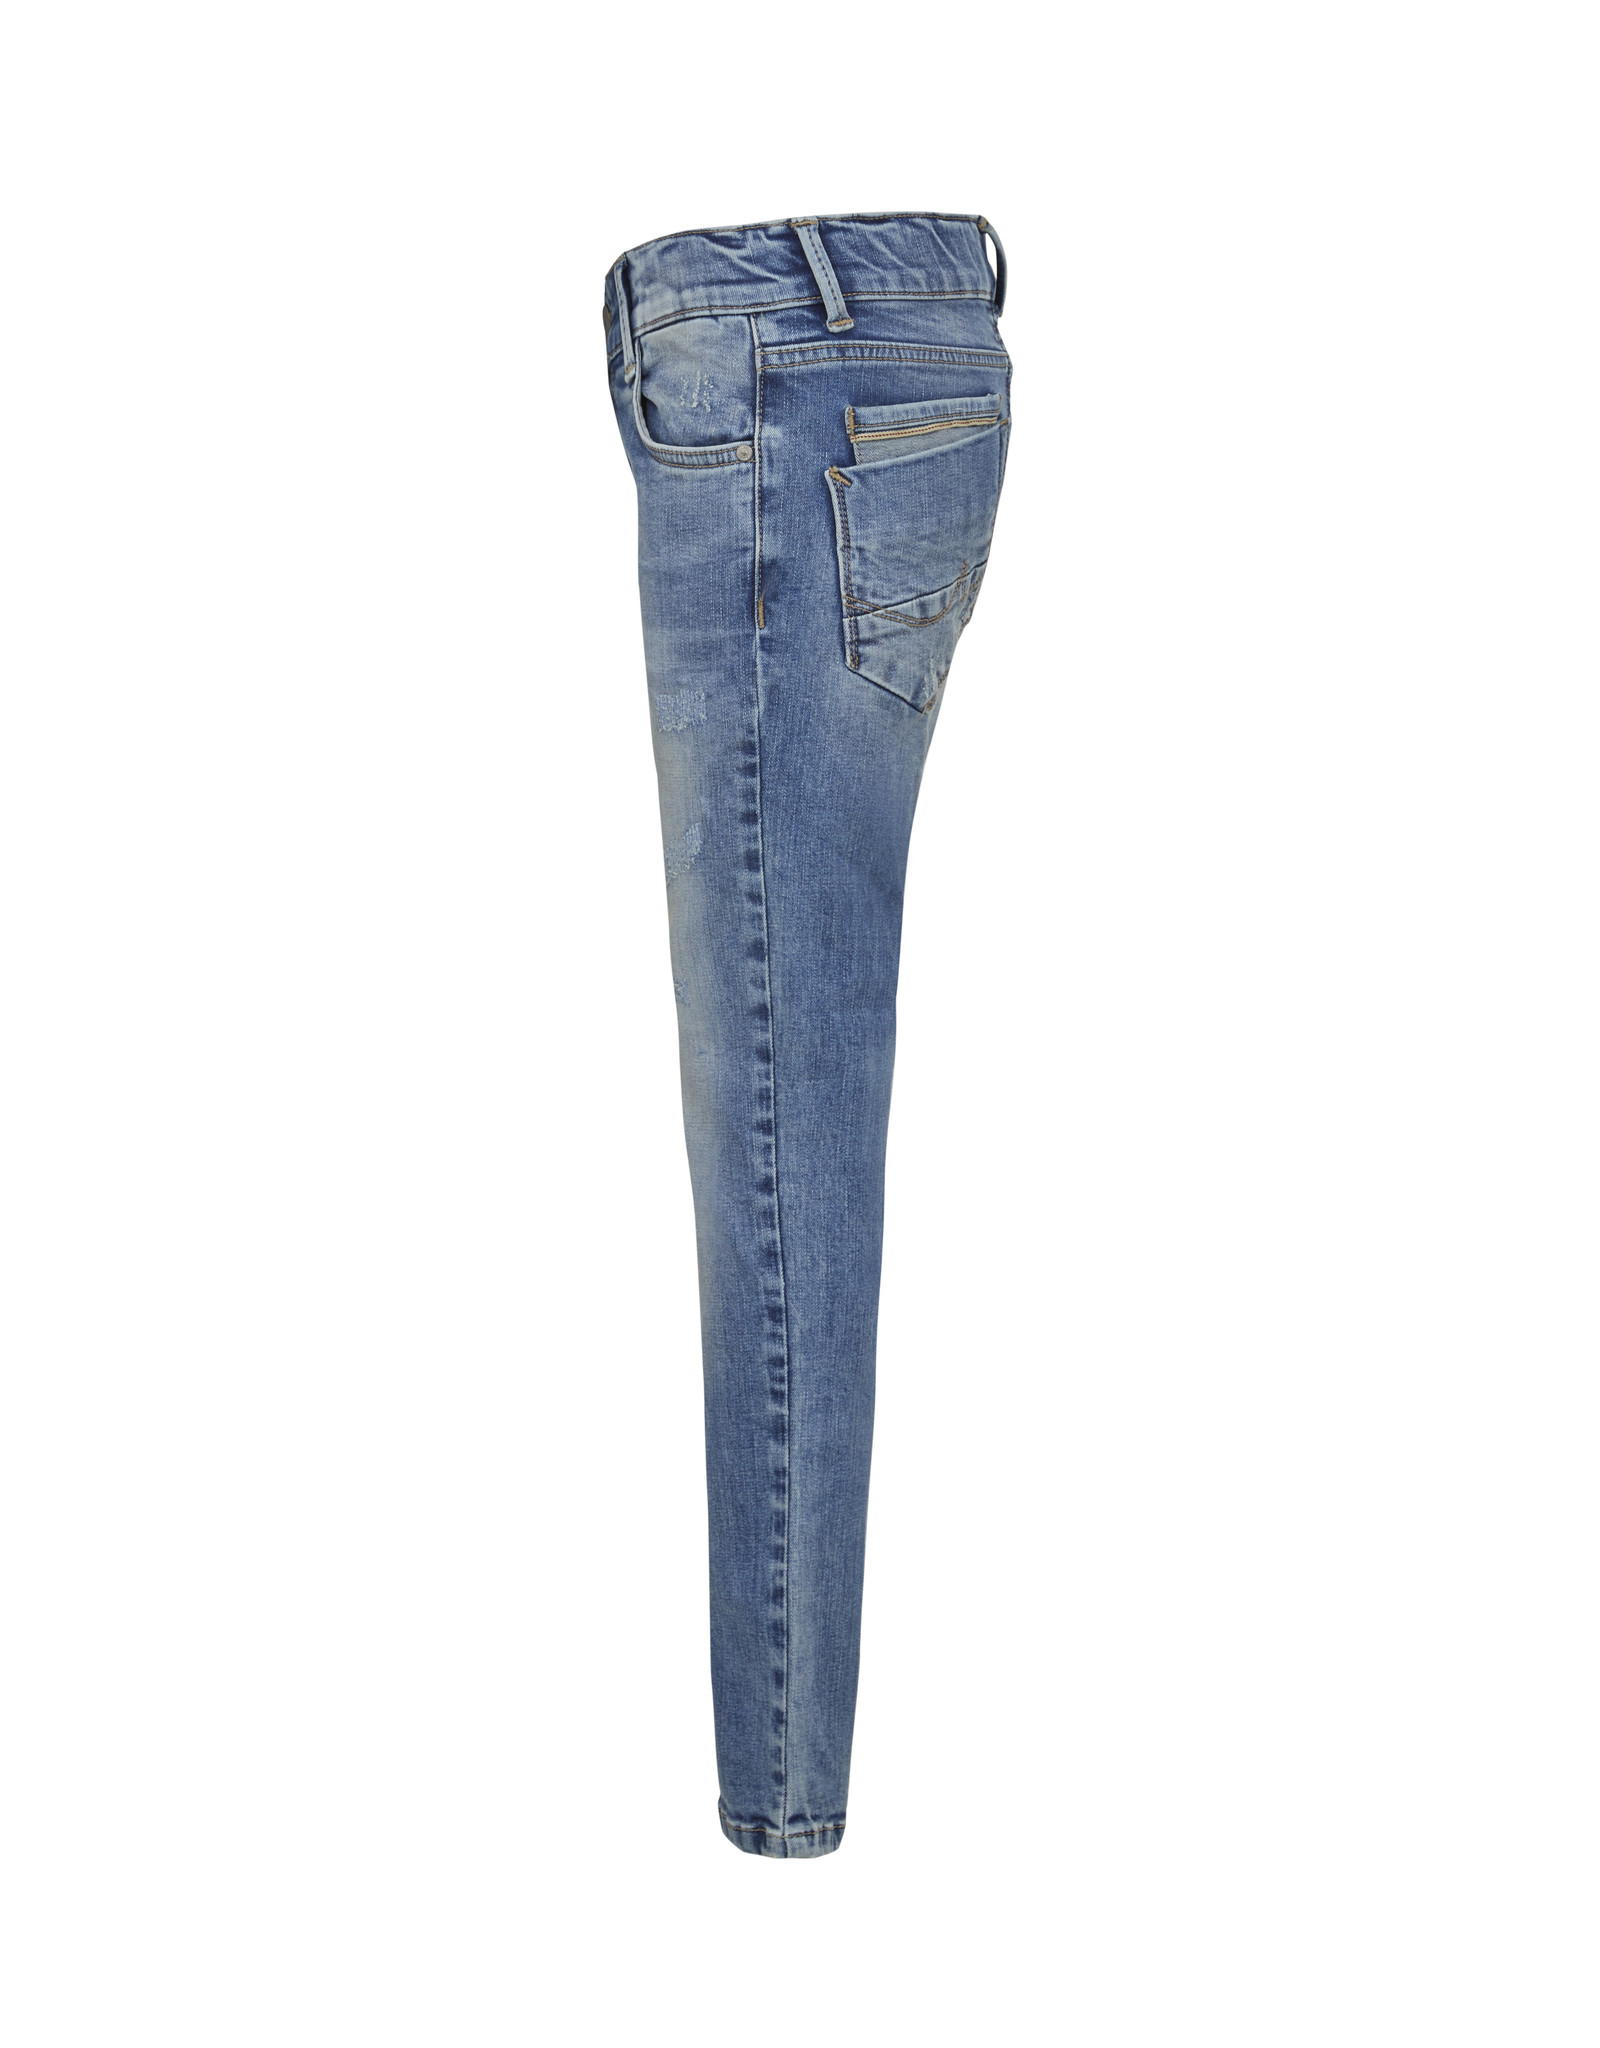 LTB Jeans LTB jeans New Cooper storm blue wash